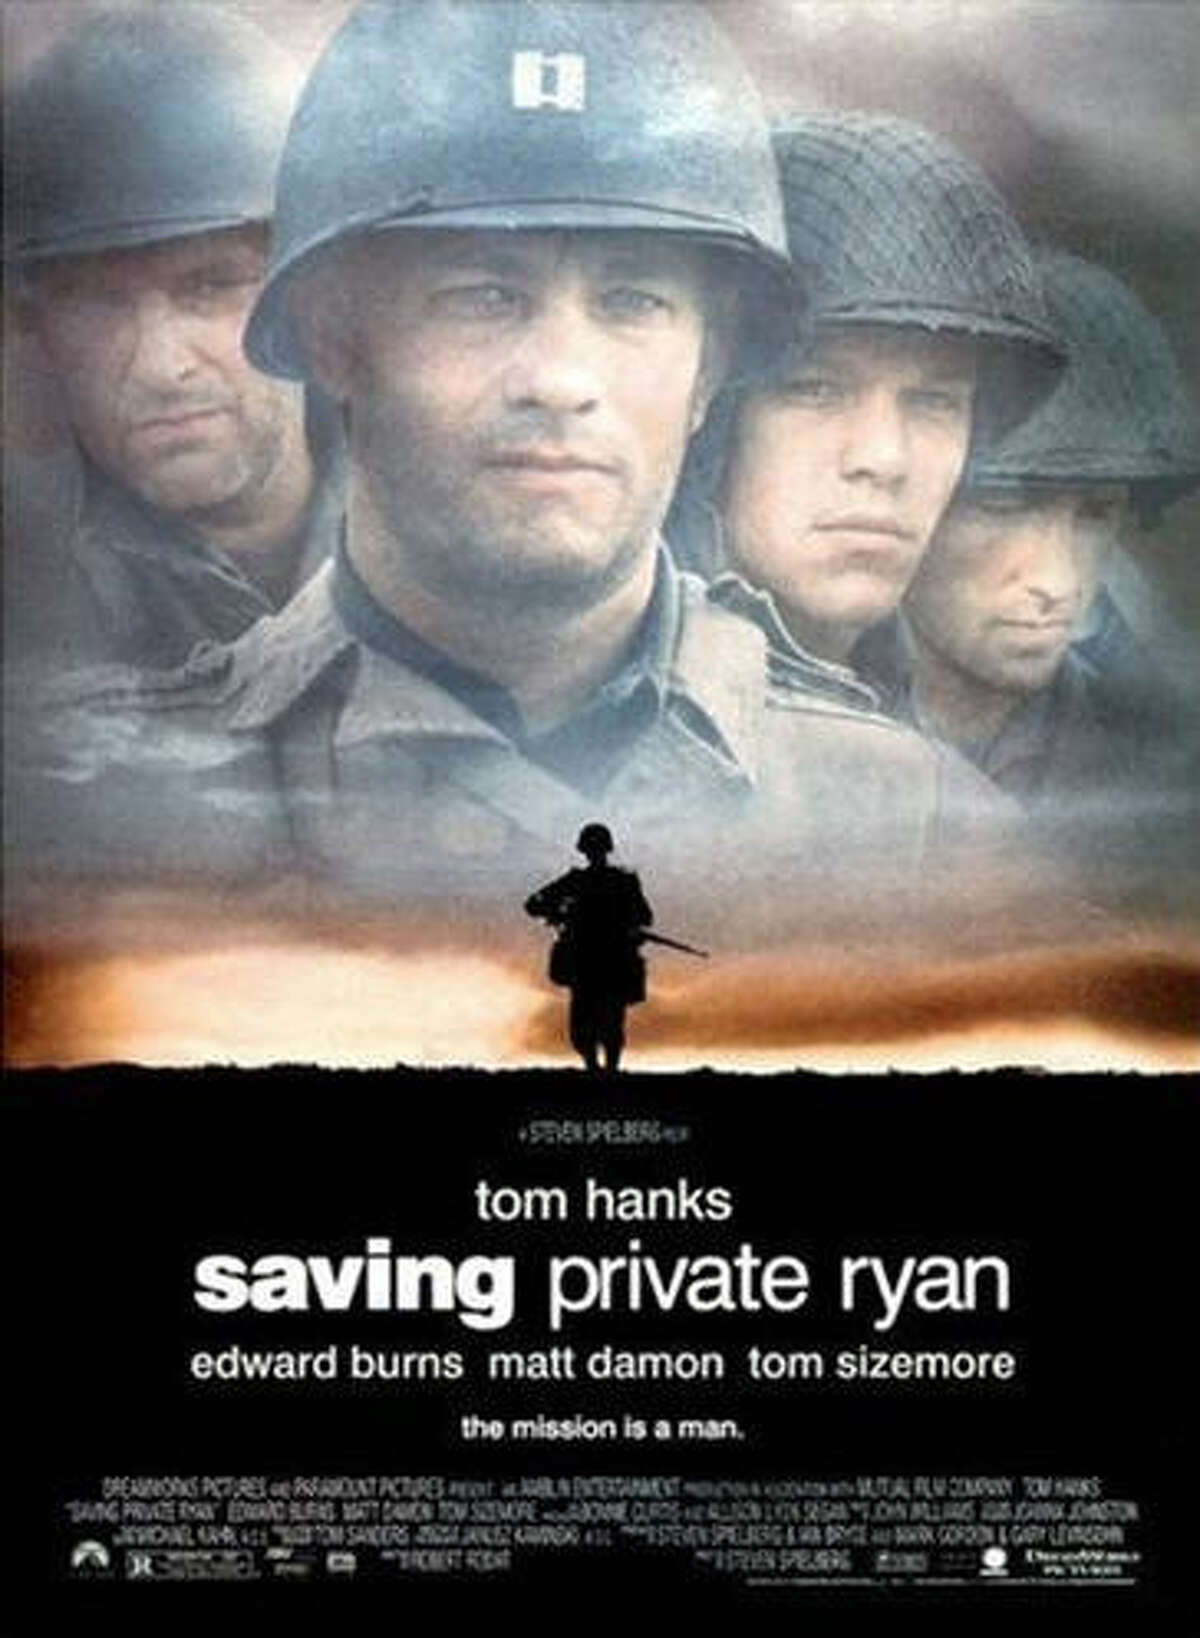 """""""Saving Private Ryan"""" Plot: A small but elite band of soldiers searches the European countryside during World War II for a private who has been given a free pass home from the cruelty of war. American Themes: Waving the Flag, Loyalty to Friends, Fighting for Your Country, The Underdog, Winning Dubya-Dubya-Two, Fighting for What's Right, Beating the Bad Guys. RottenTomatoes.com Score: 92 percent."""